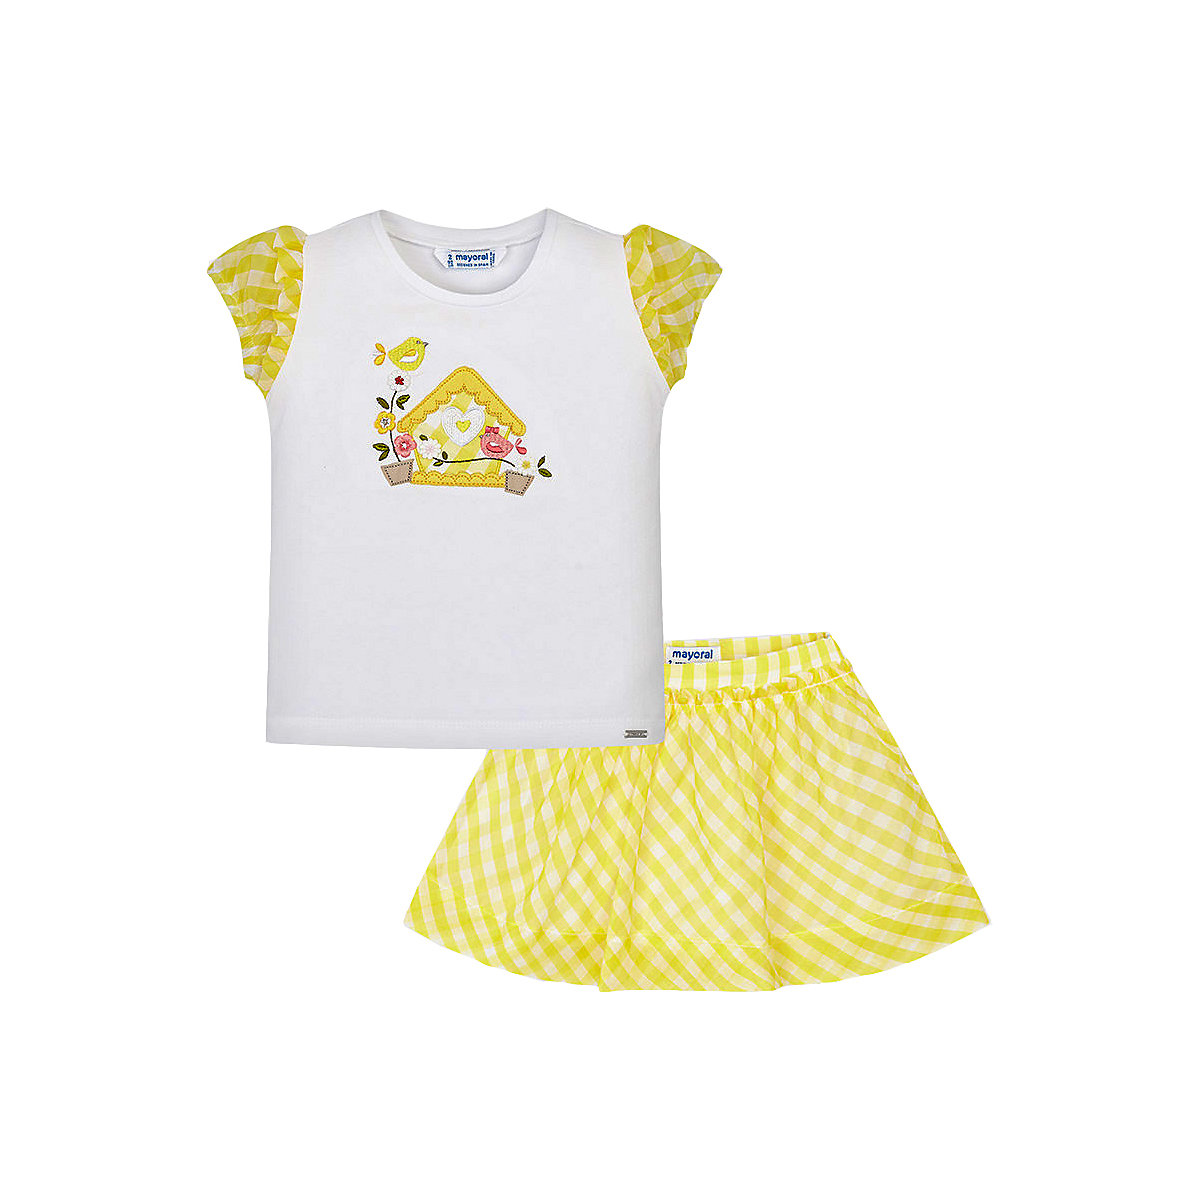 Baby's Sets MAYORAL 10685260 Set Of Clothes For Kids T-shirt Legs Shirt Shorts Girls And Boys